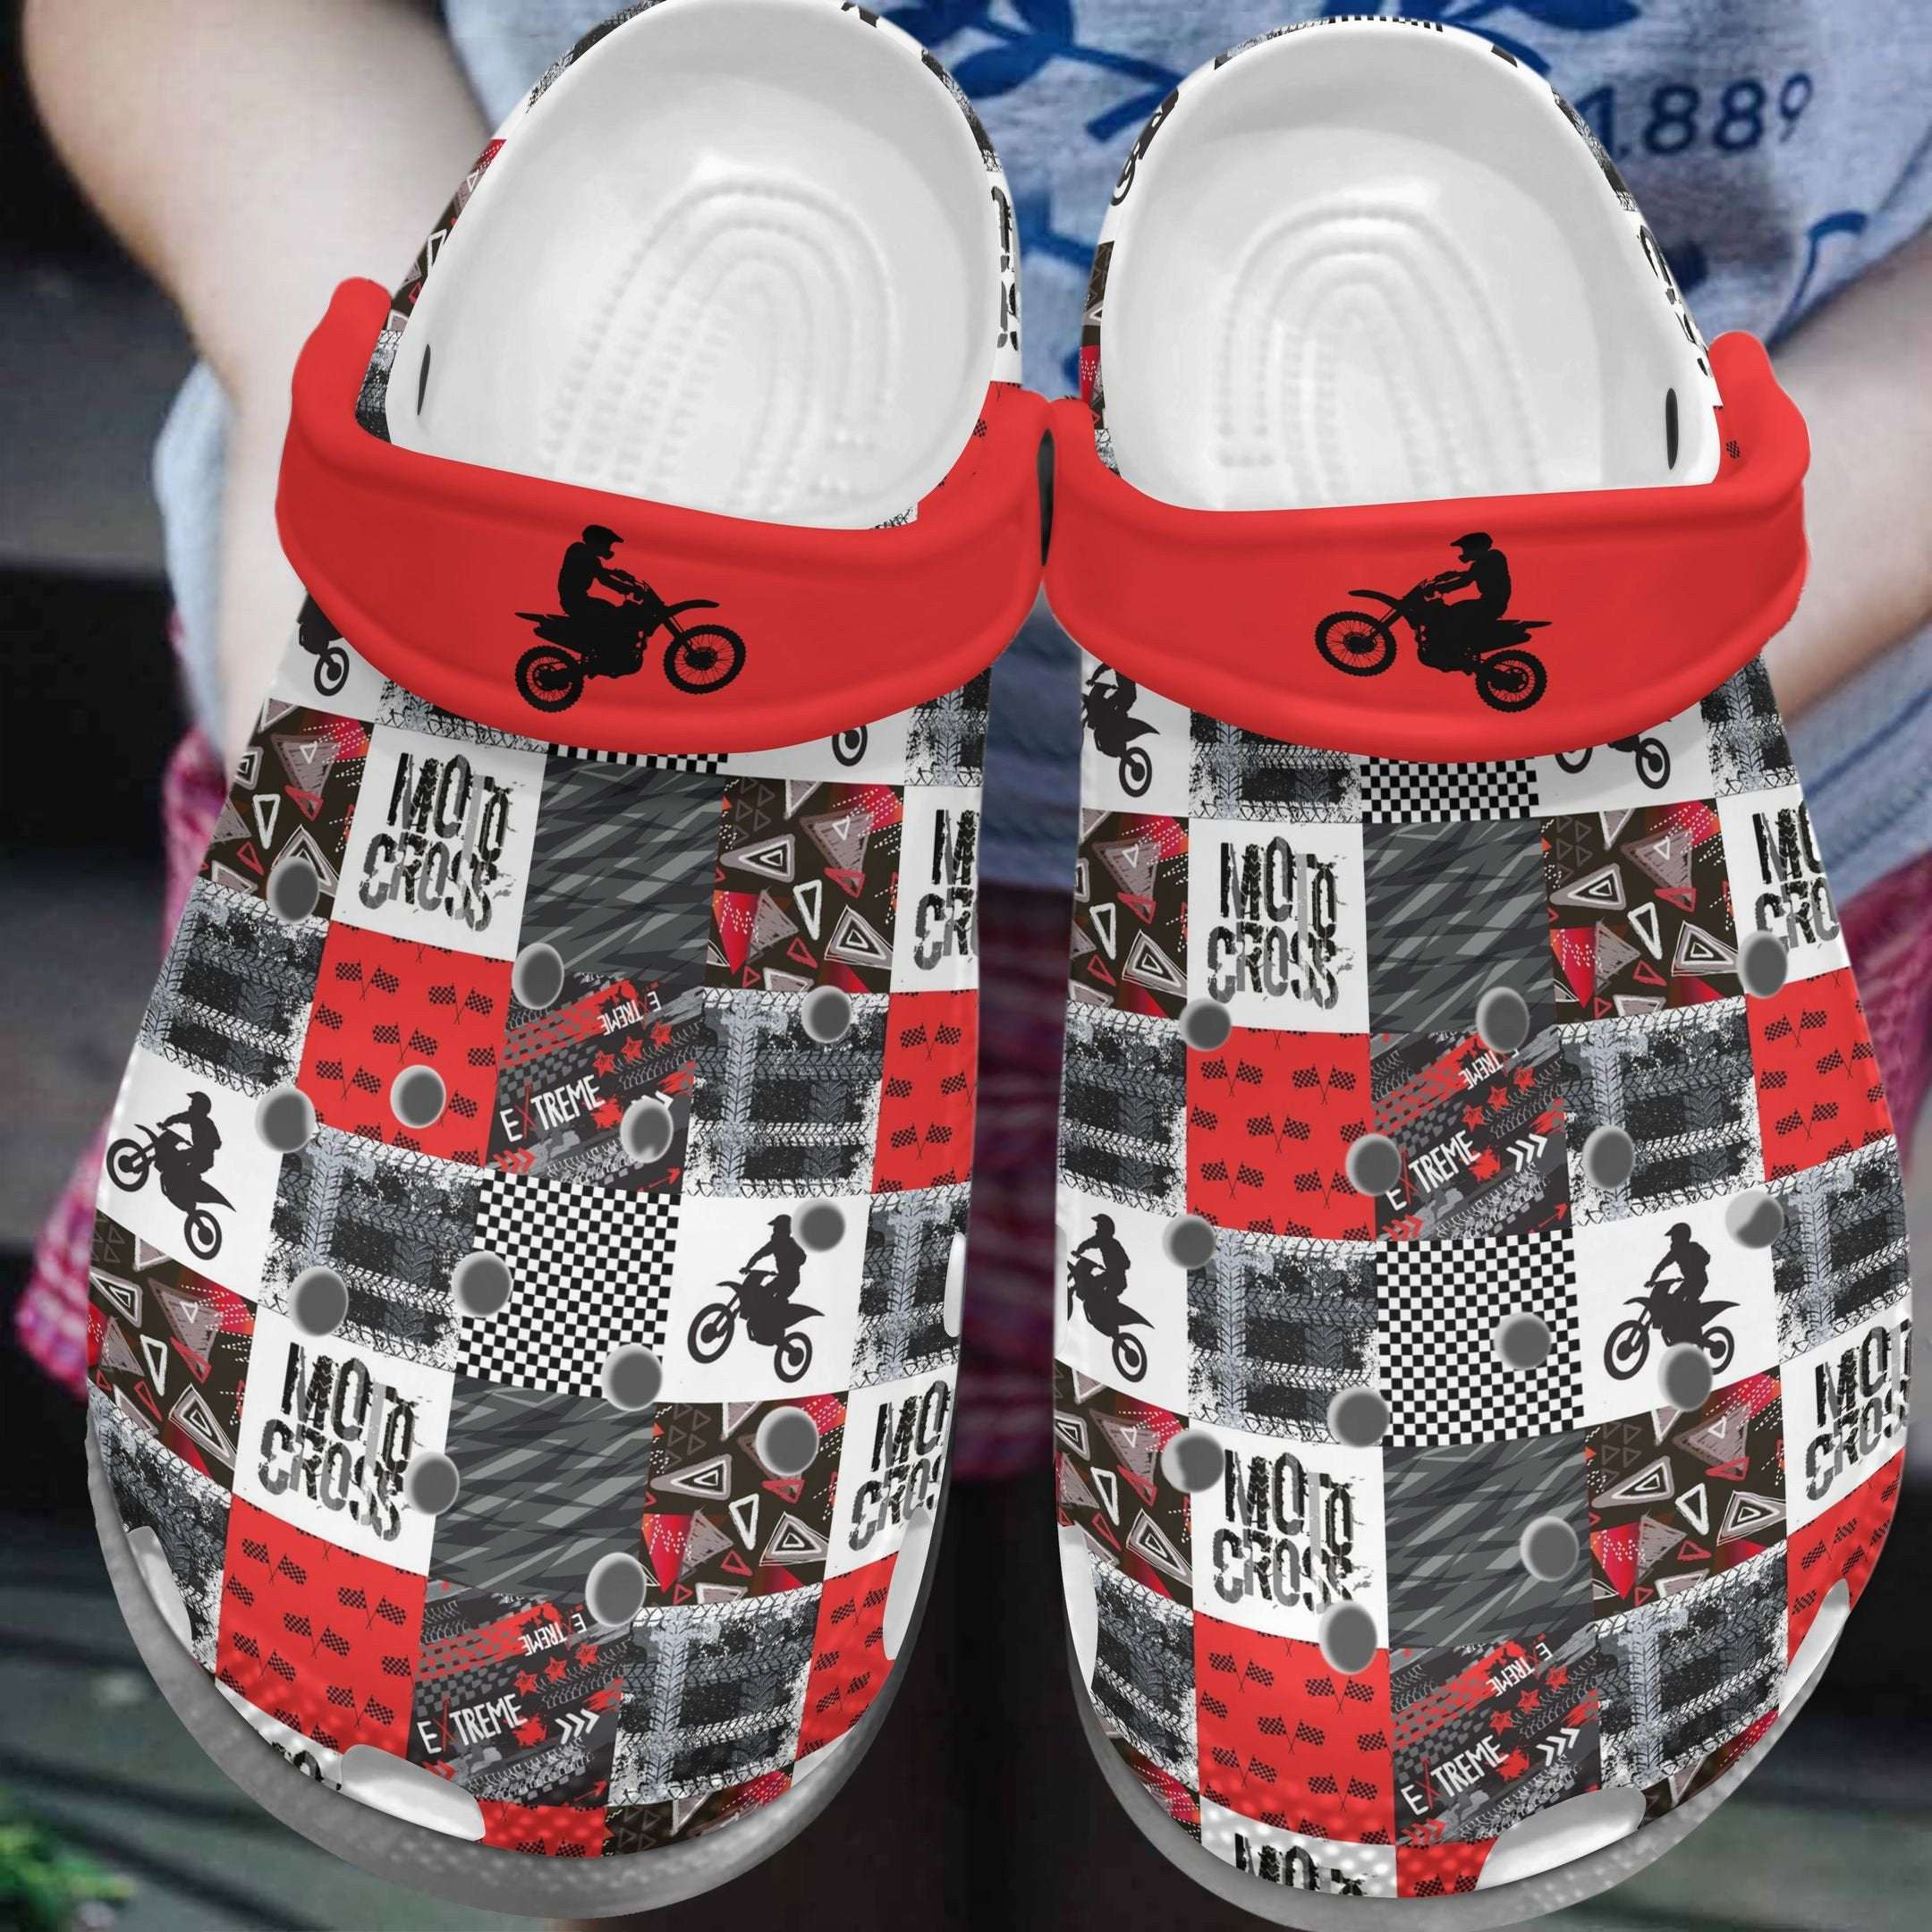 Motocross Lover Crocs Clog Shoes